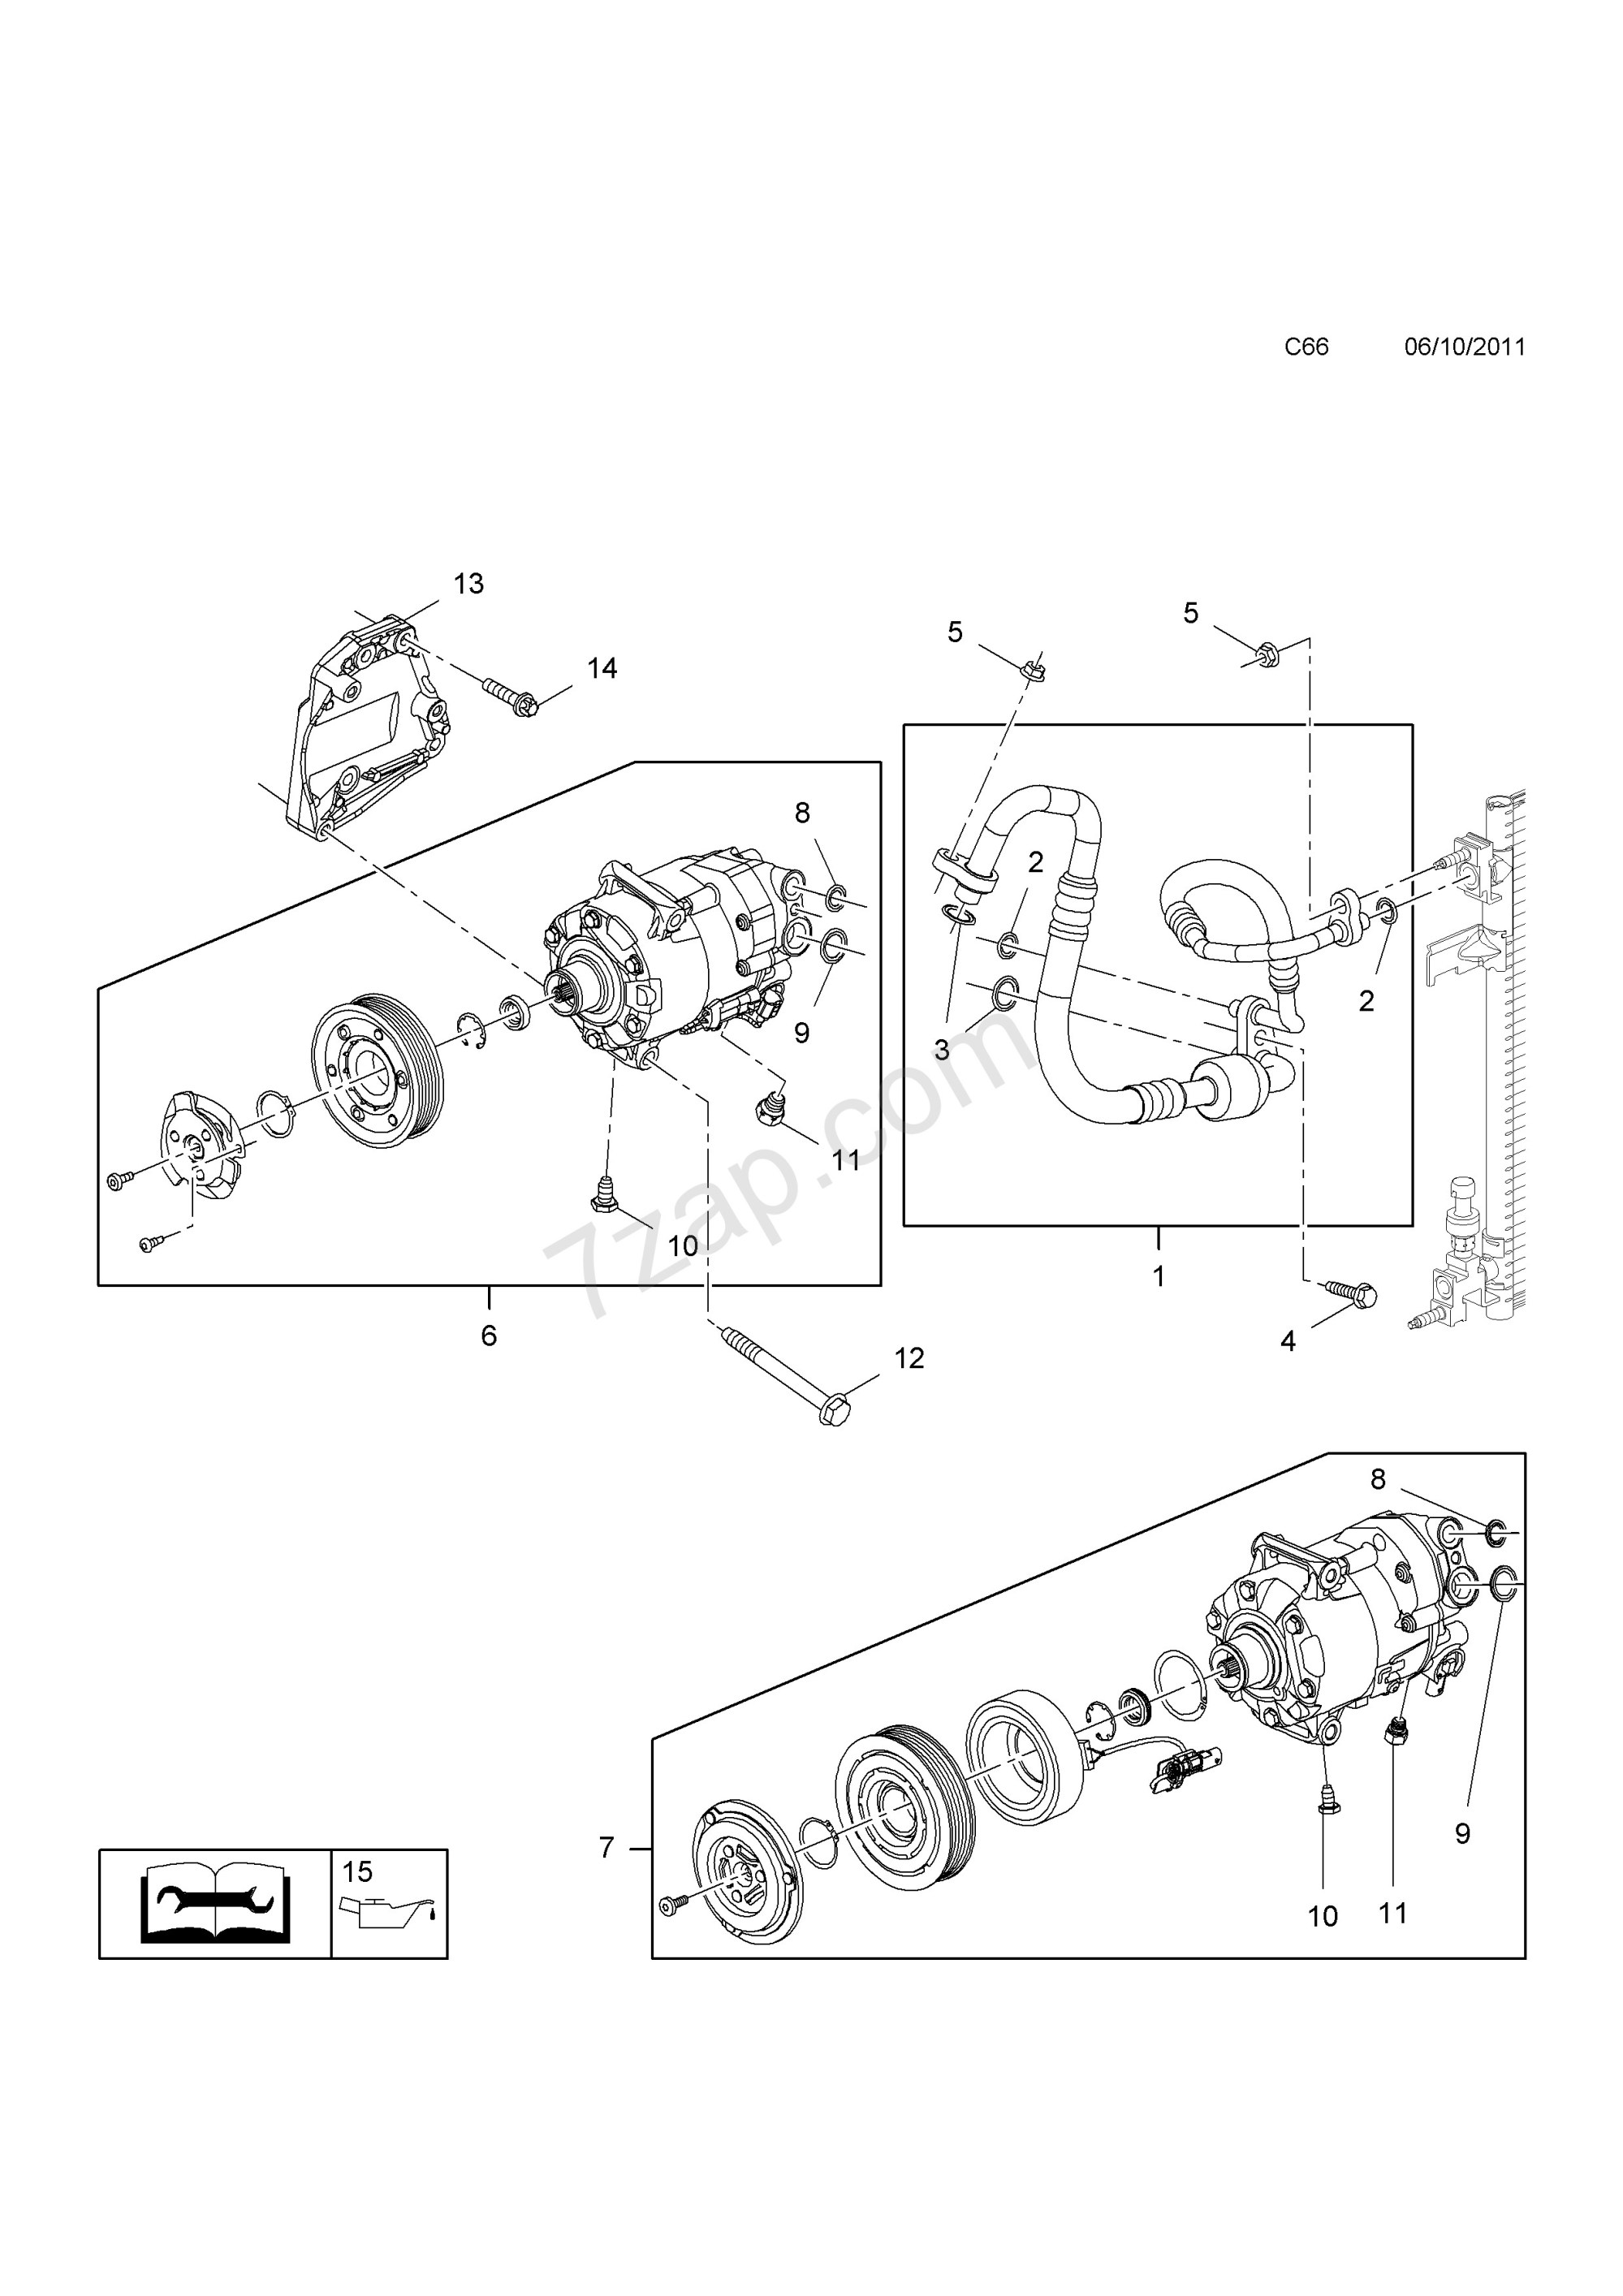 hight resolution of vauxhall engine diagrams vw jetta fuse box diagram opel zafira engine diagram vauxhall zafira b engine diagram